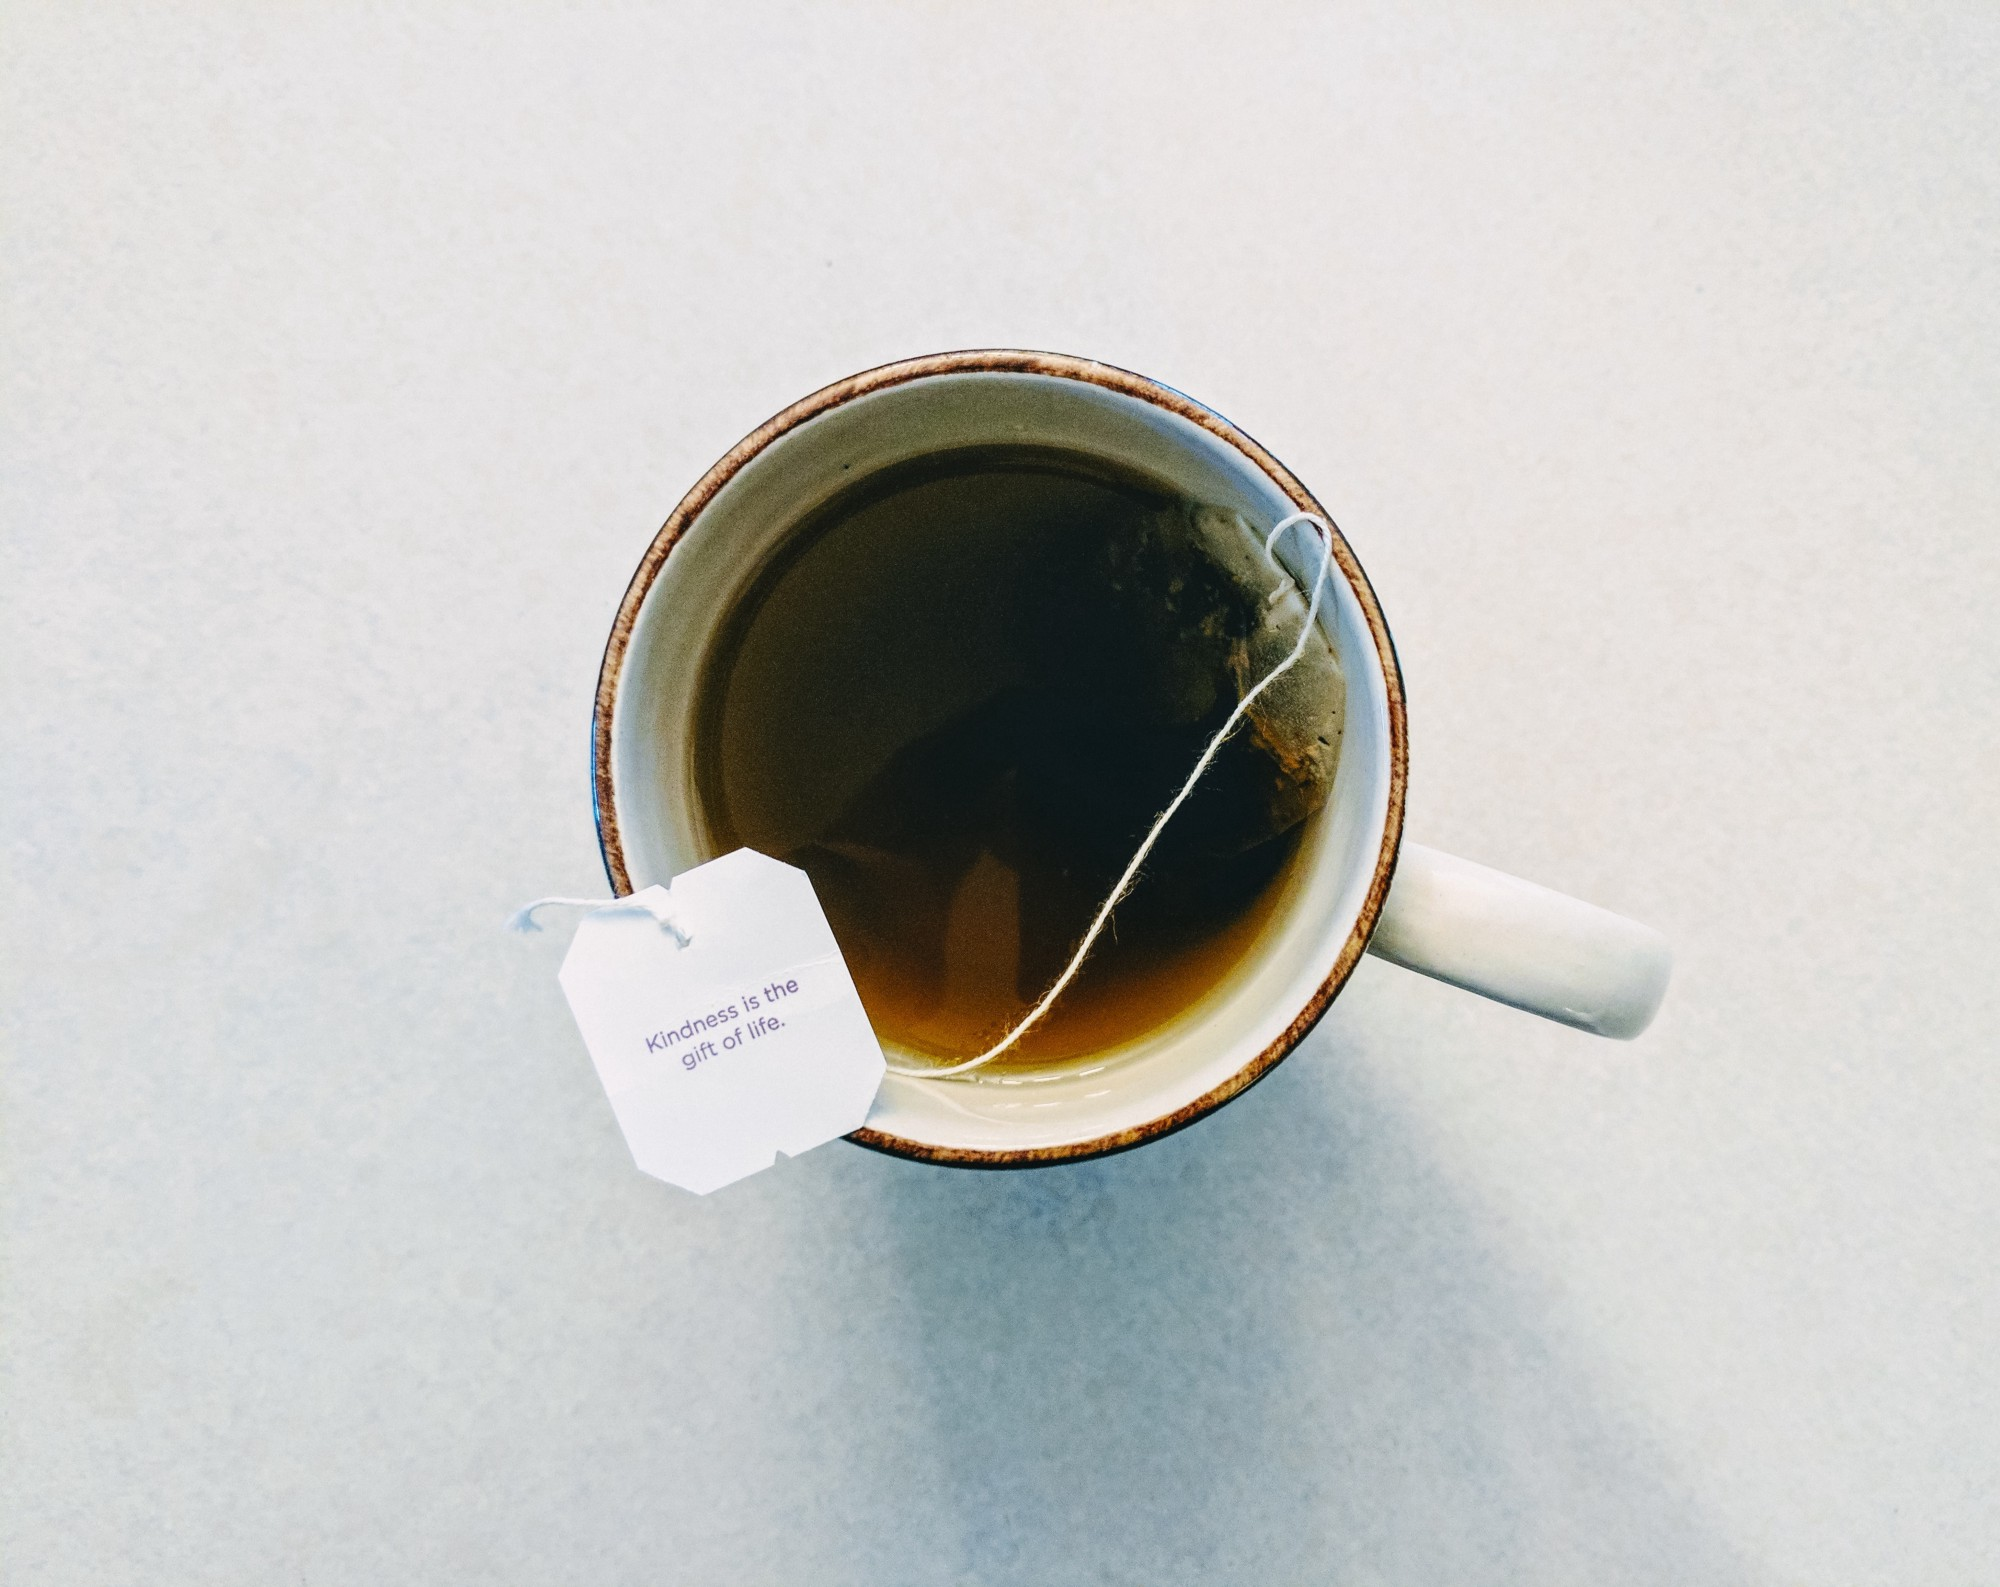 A camera looks down on a cup of black tea. A tag on the teabag reads 'Kindness is the gift of life.'